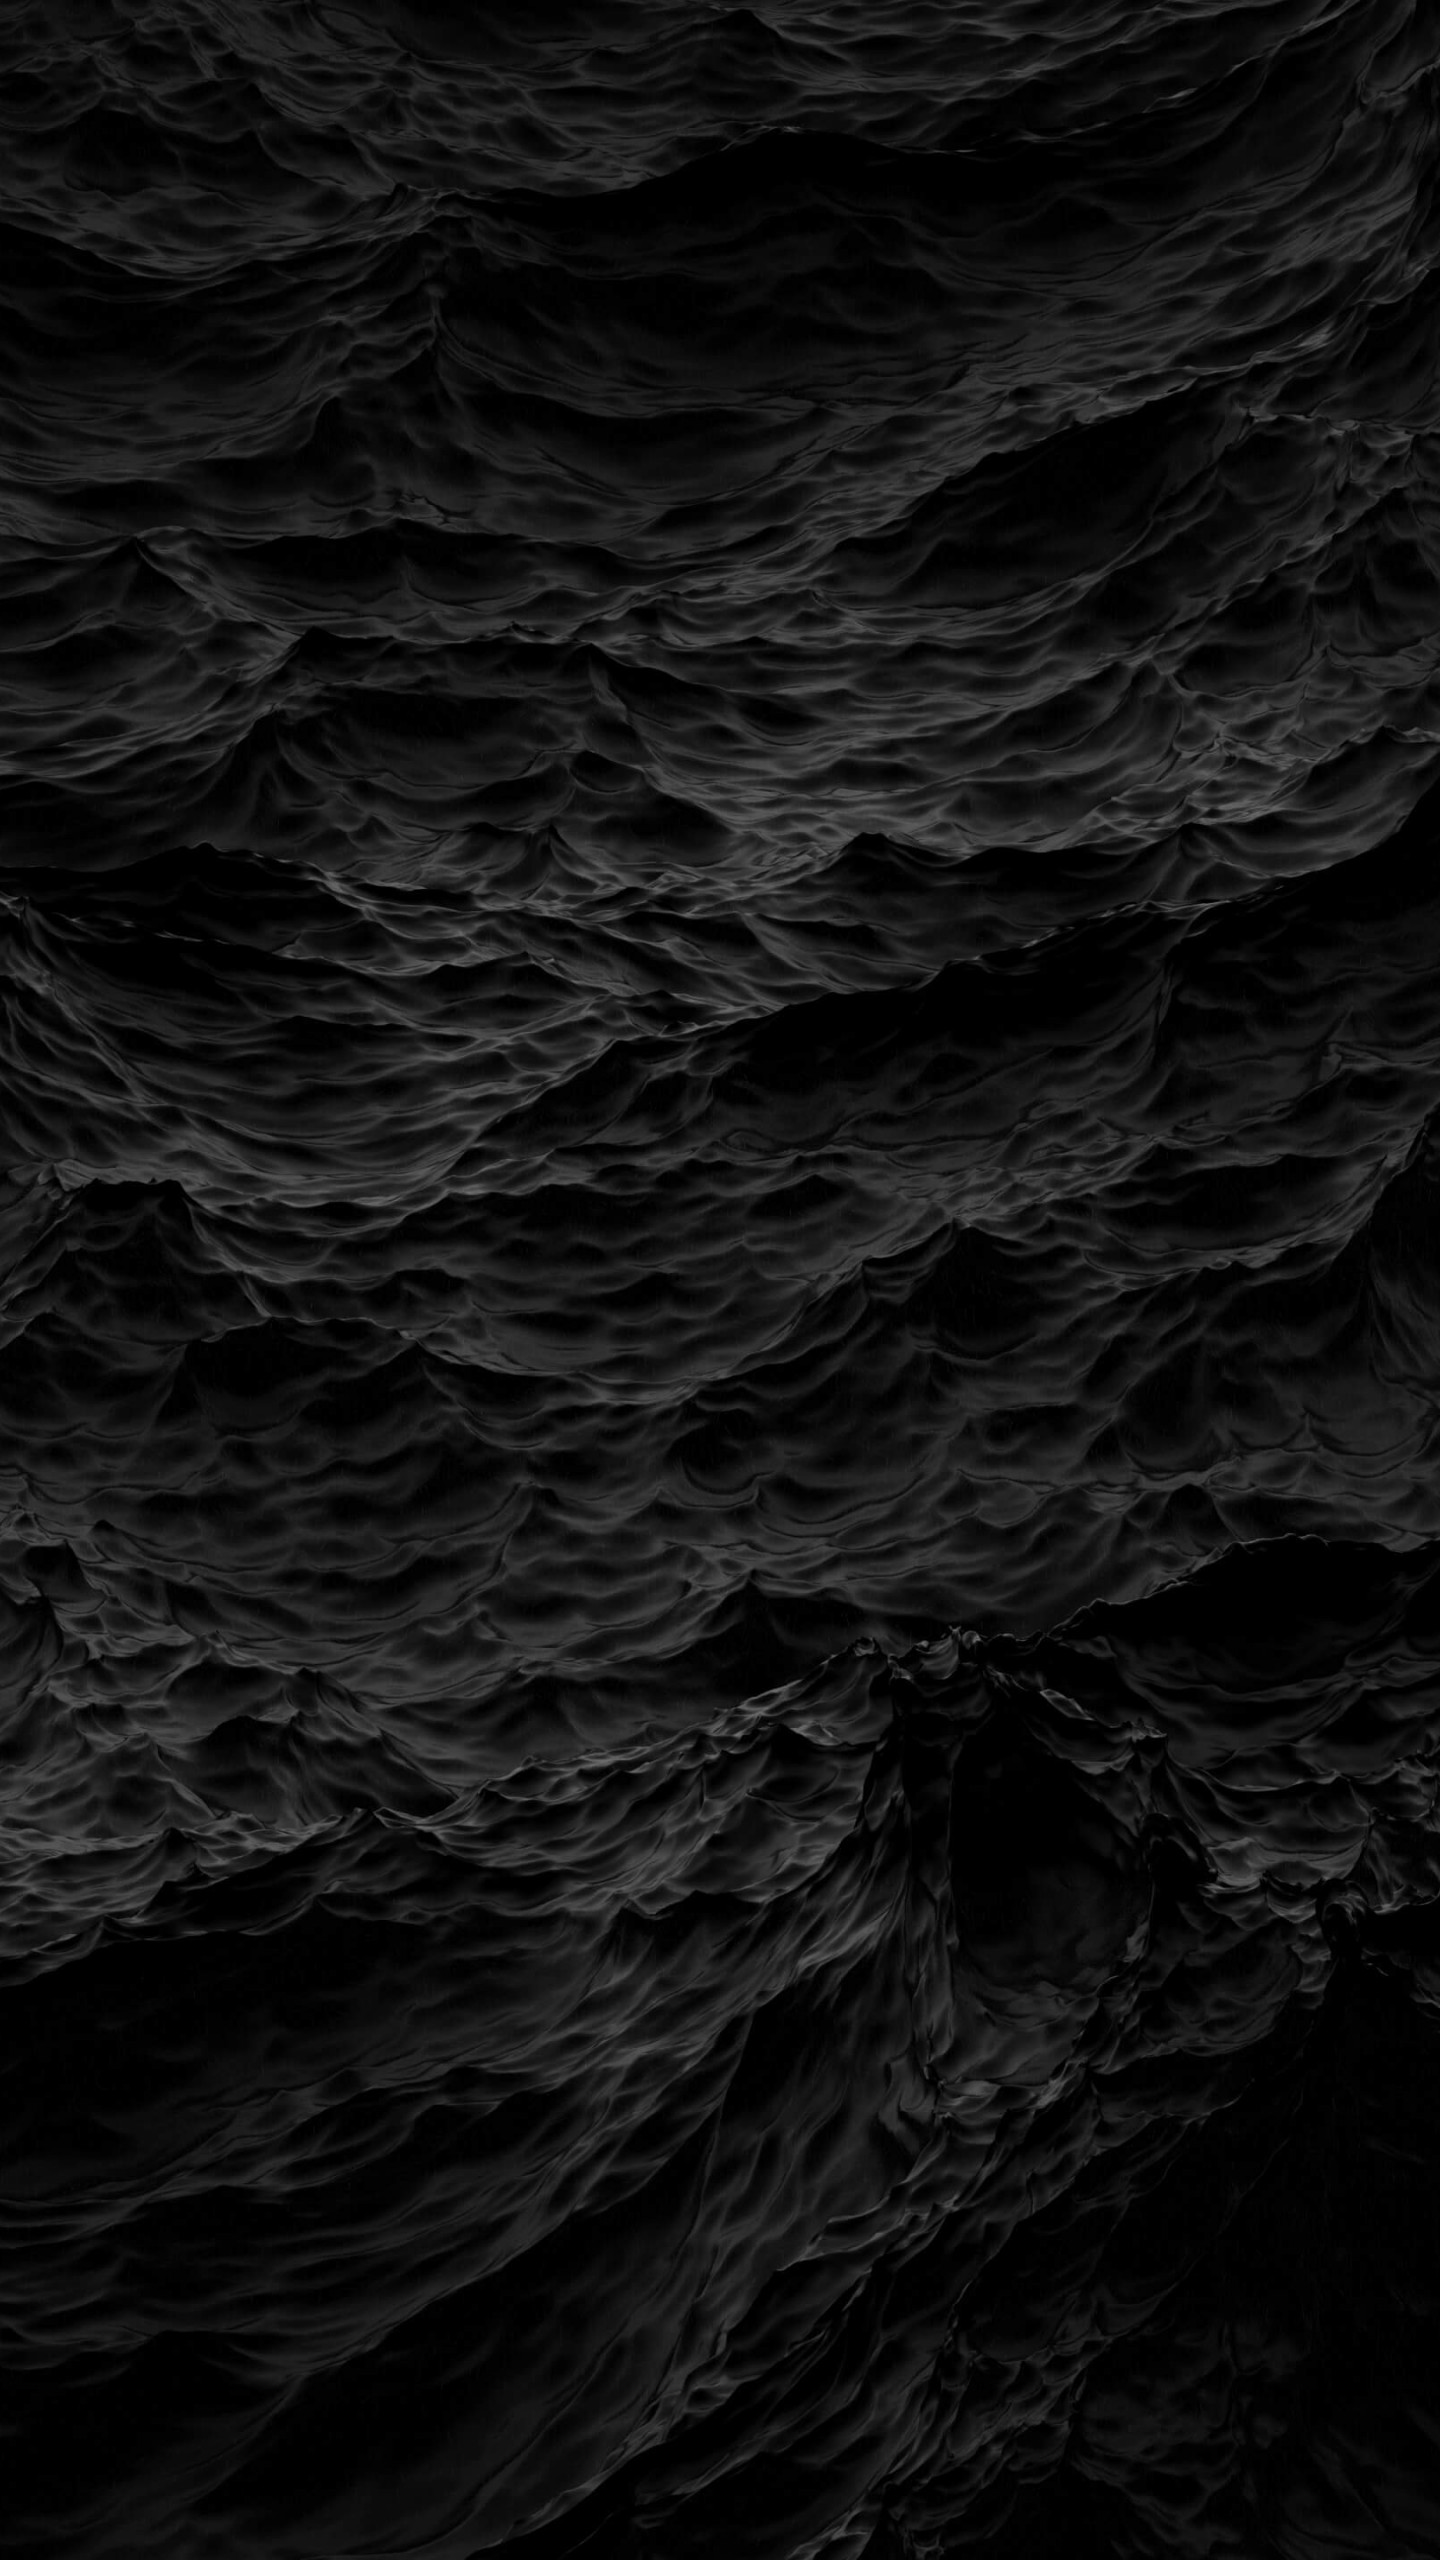 Black Waves Wallpaper for Google Nexus 6